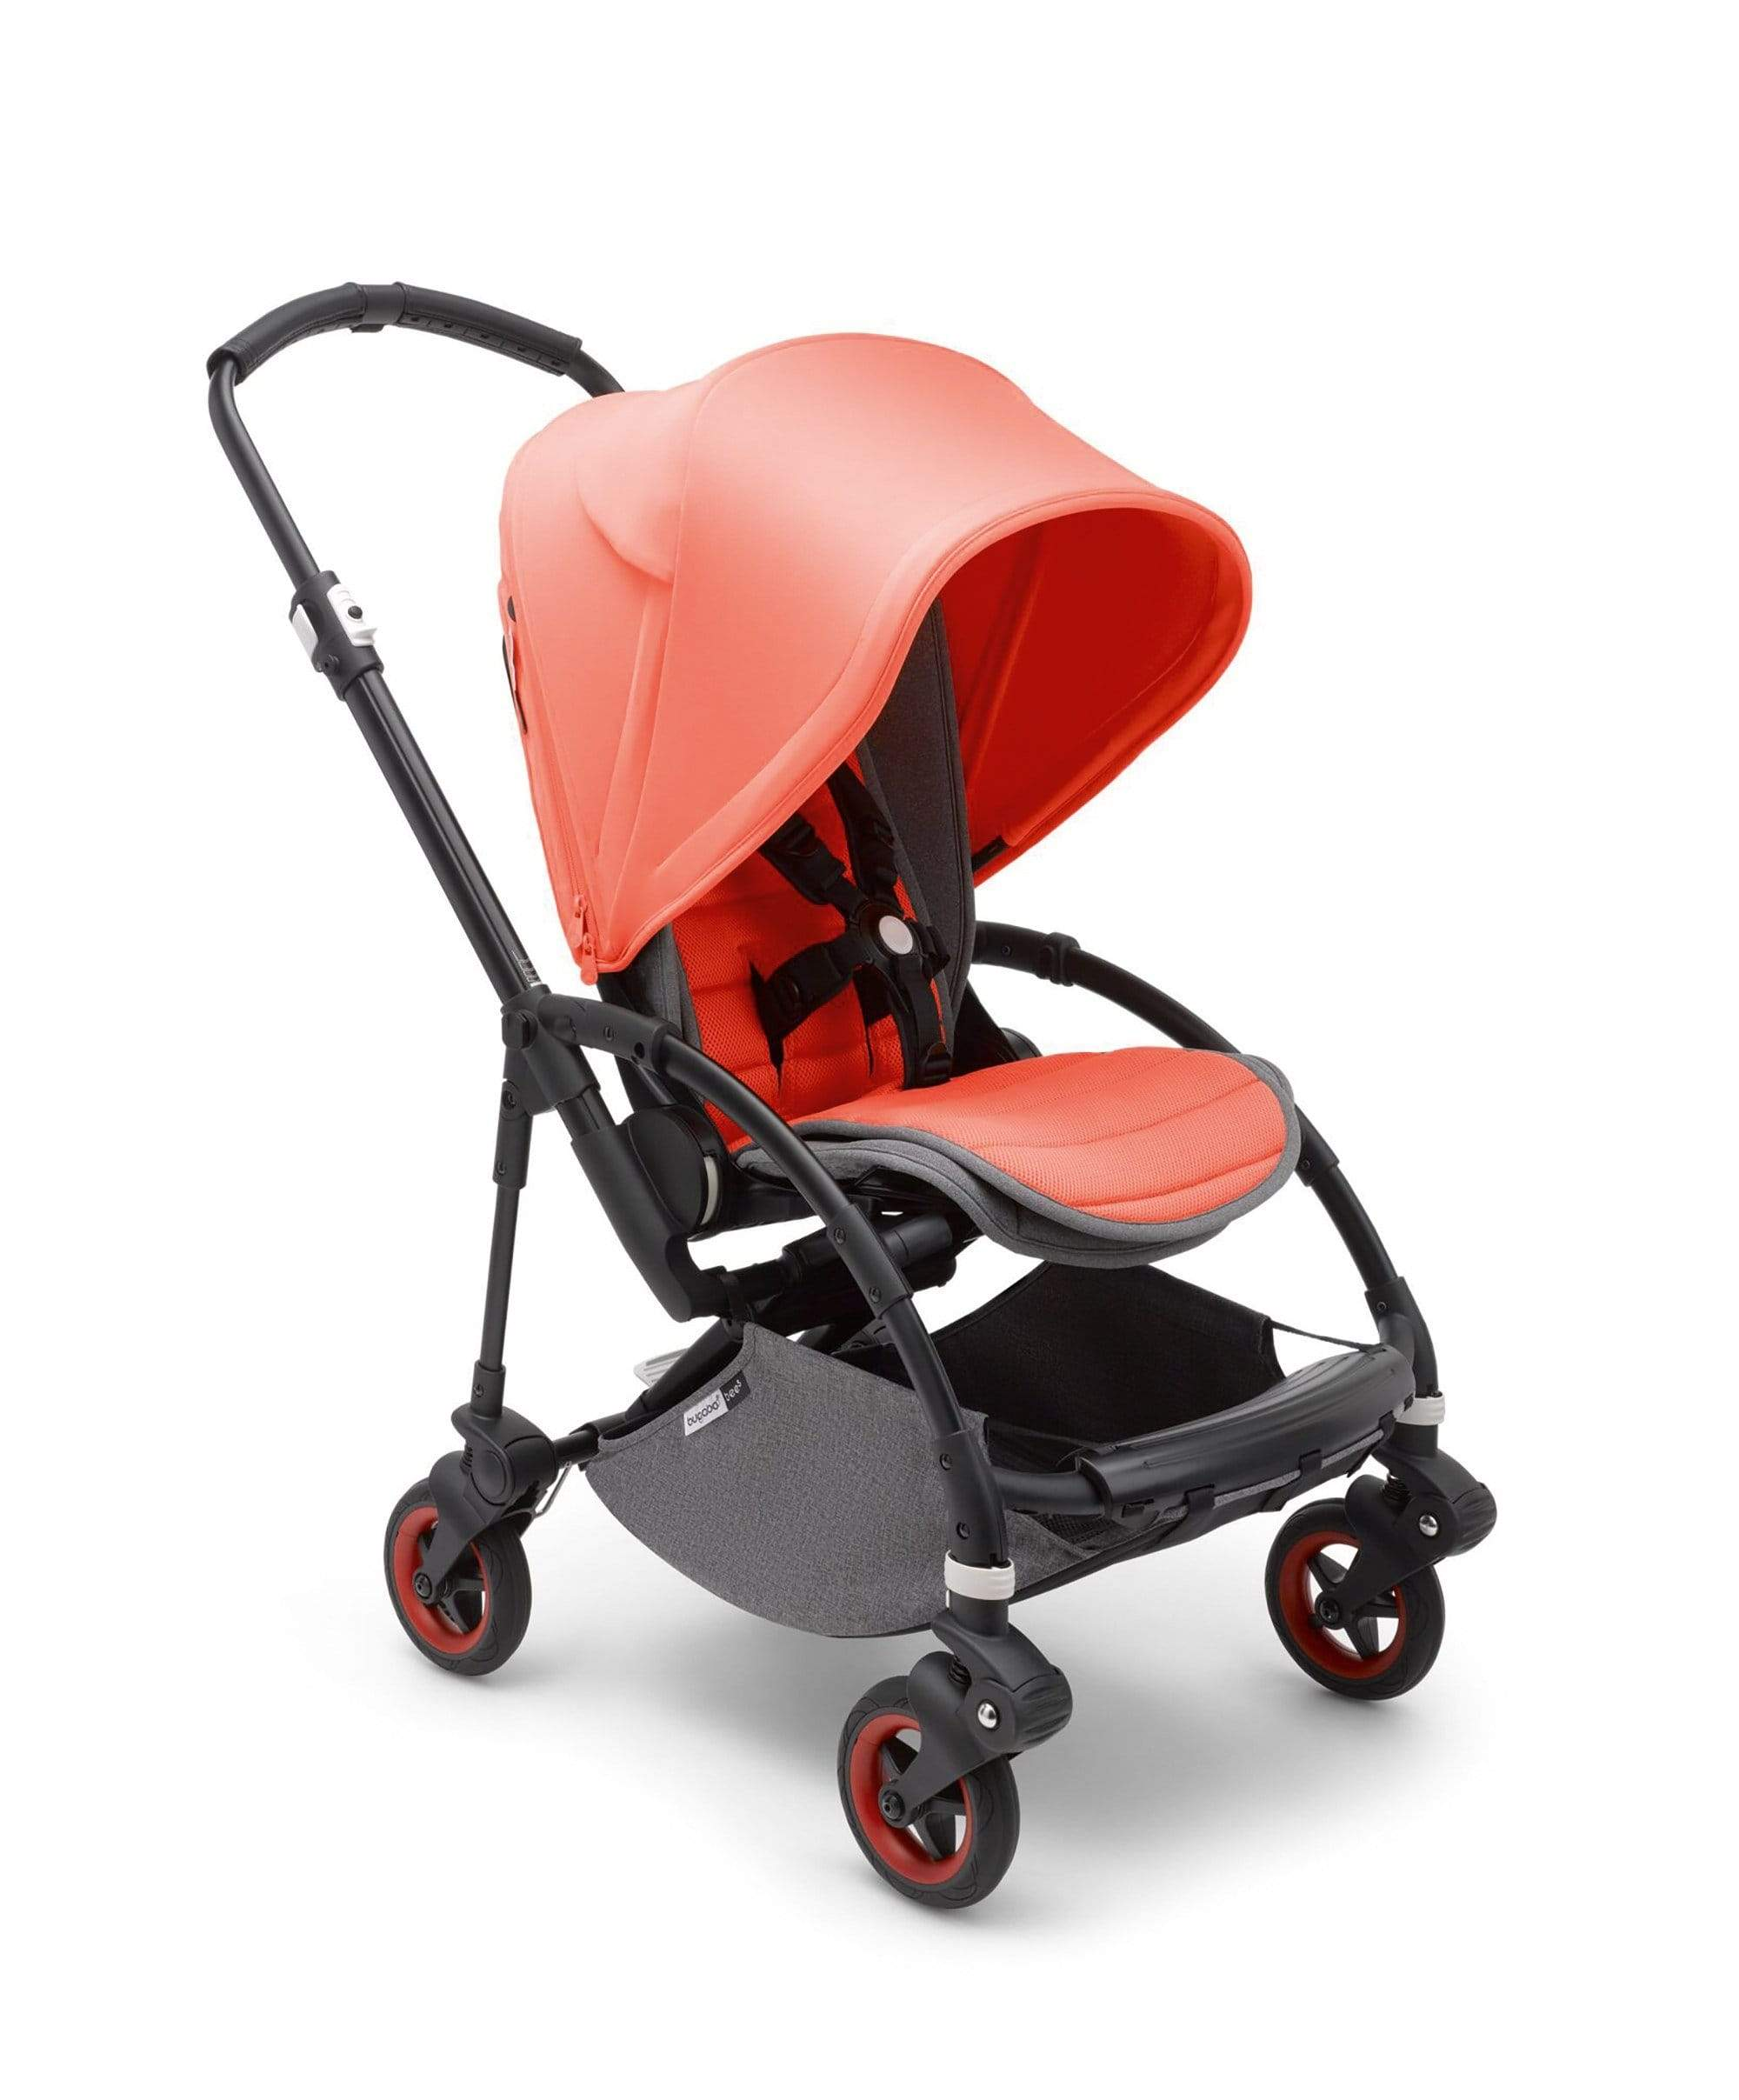 Bugaboo Bee 5 Stroller - Coral